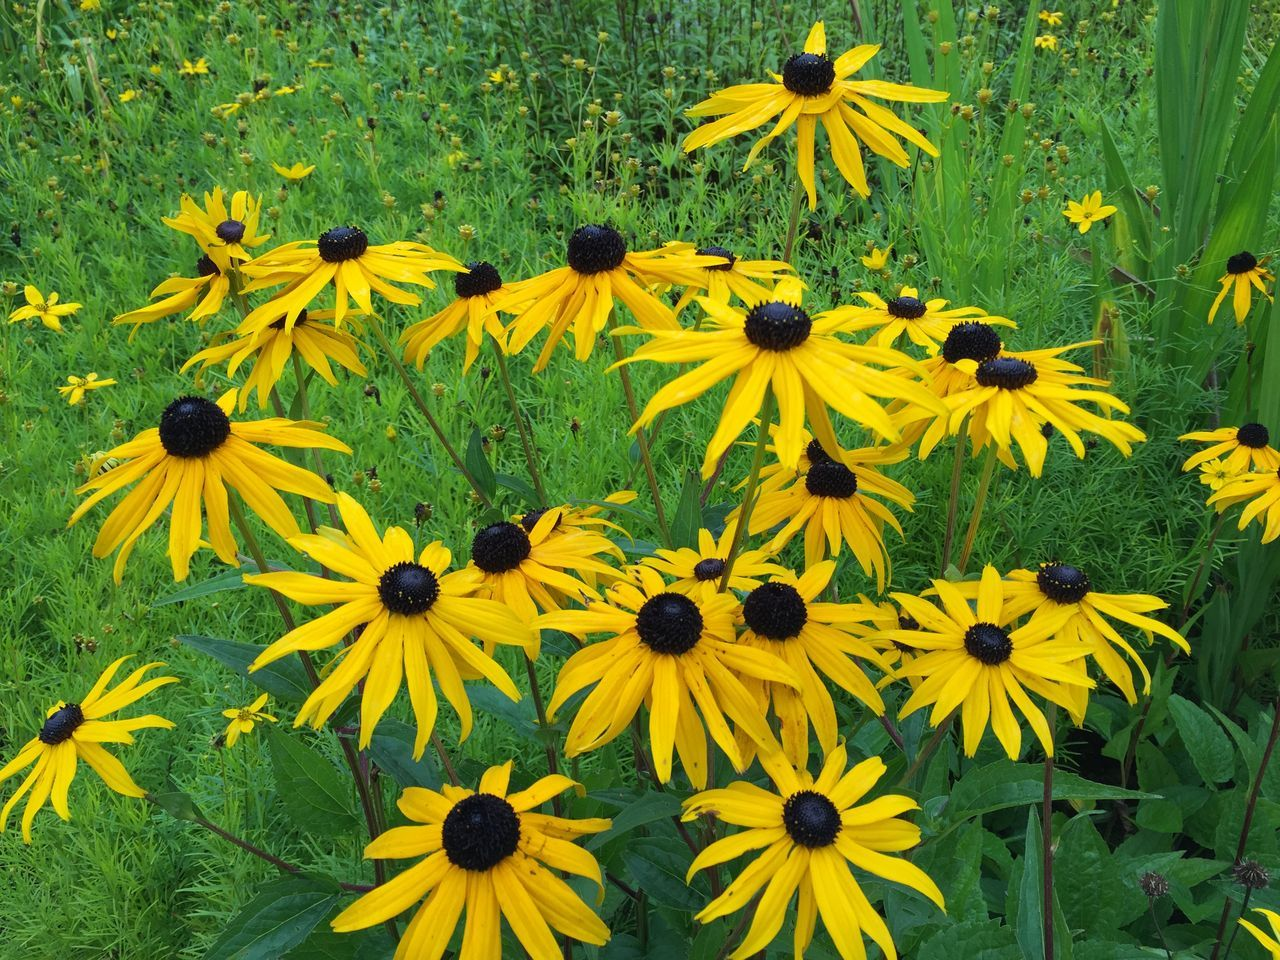 Nature in the city's park under summer Abundance Beauty In Nature Black-eyed Susan Blossom Botany Flower Flower Head Fragility Freshness Growing Growth In Bloom Nature Outdoors Petal Plant Pollen Scenics Springtime Stock Image Summer Tranquility Vibrant Color Yellow Yellow Color